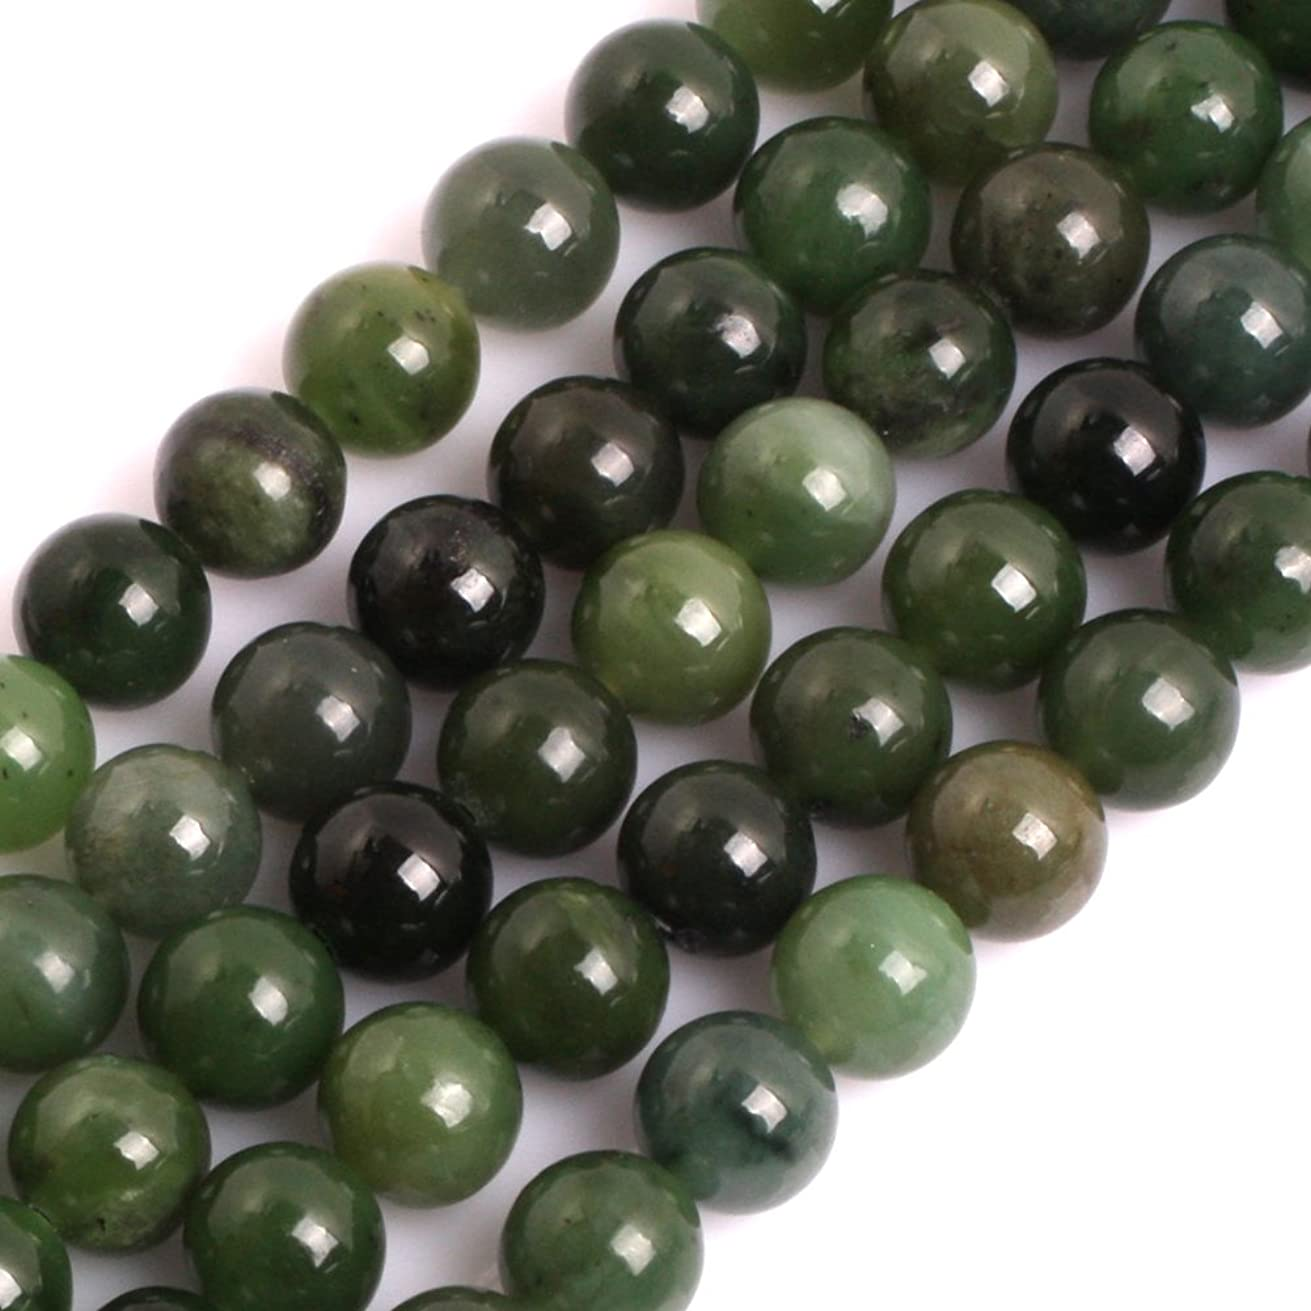 GEM-inside Natural 10mm Green Canadian Jadeite Jade Gemstone Loose Beads Energy Stone Beads for Jewelry Making Jewelry Beading Supplies for Women